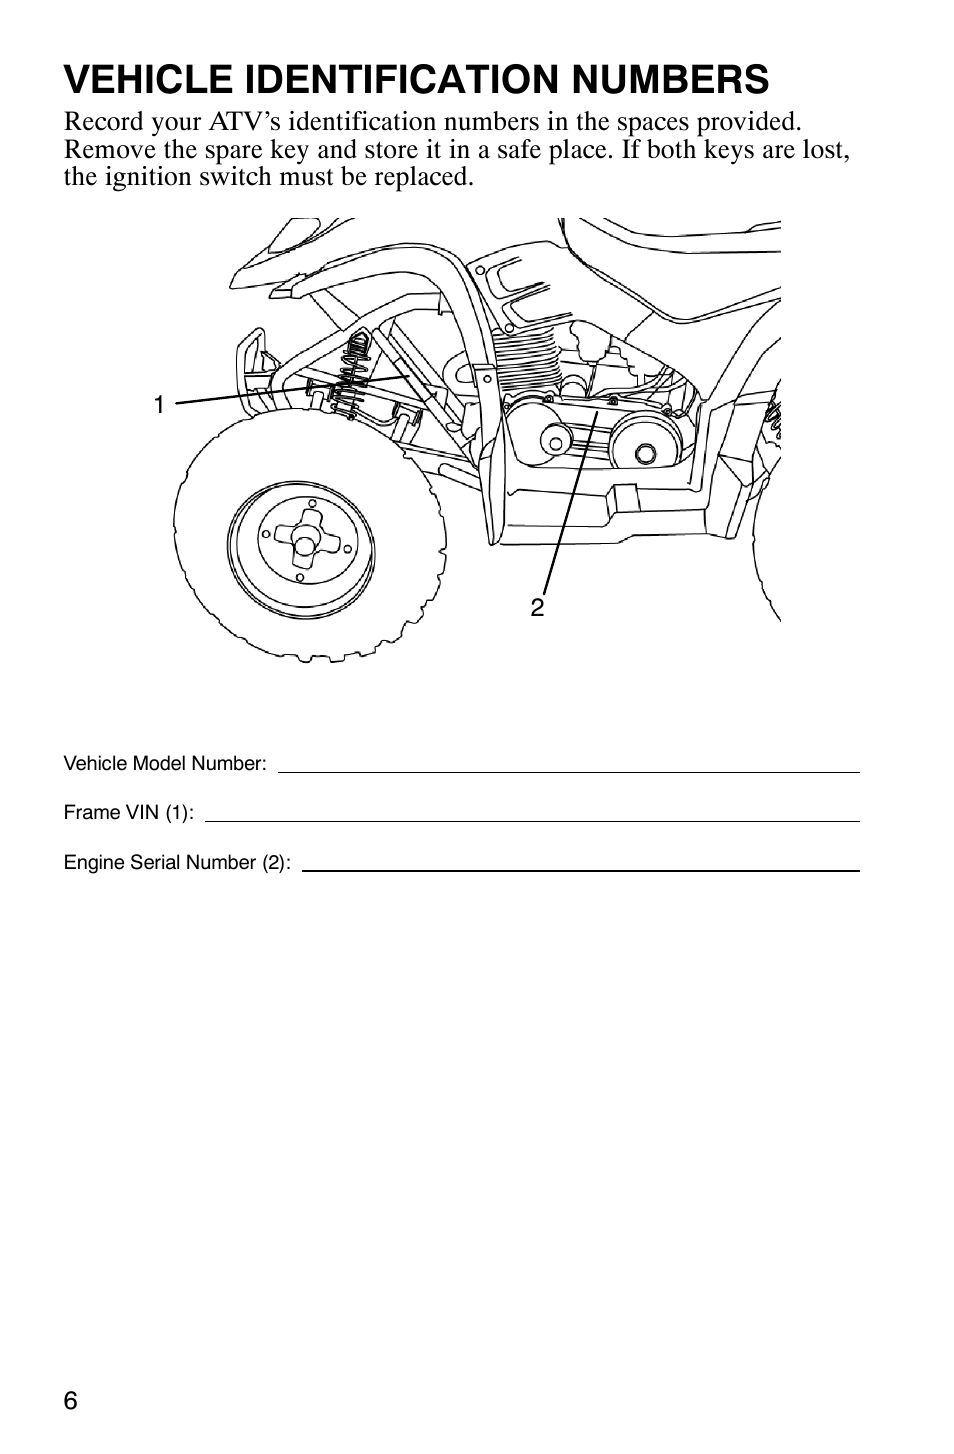 Polaris Phoenix Engine Diagram Trusted Wiring Diagrams Vehicle Identification Numbers 200 User Manual Predator 500 Parts